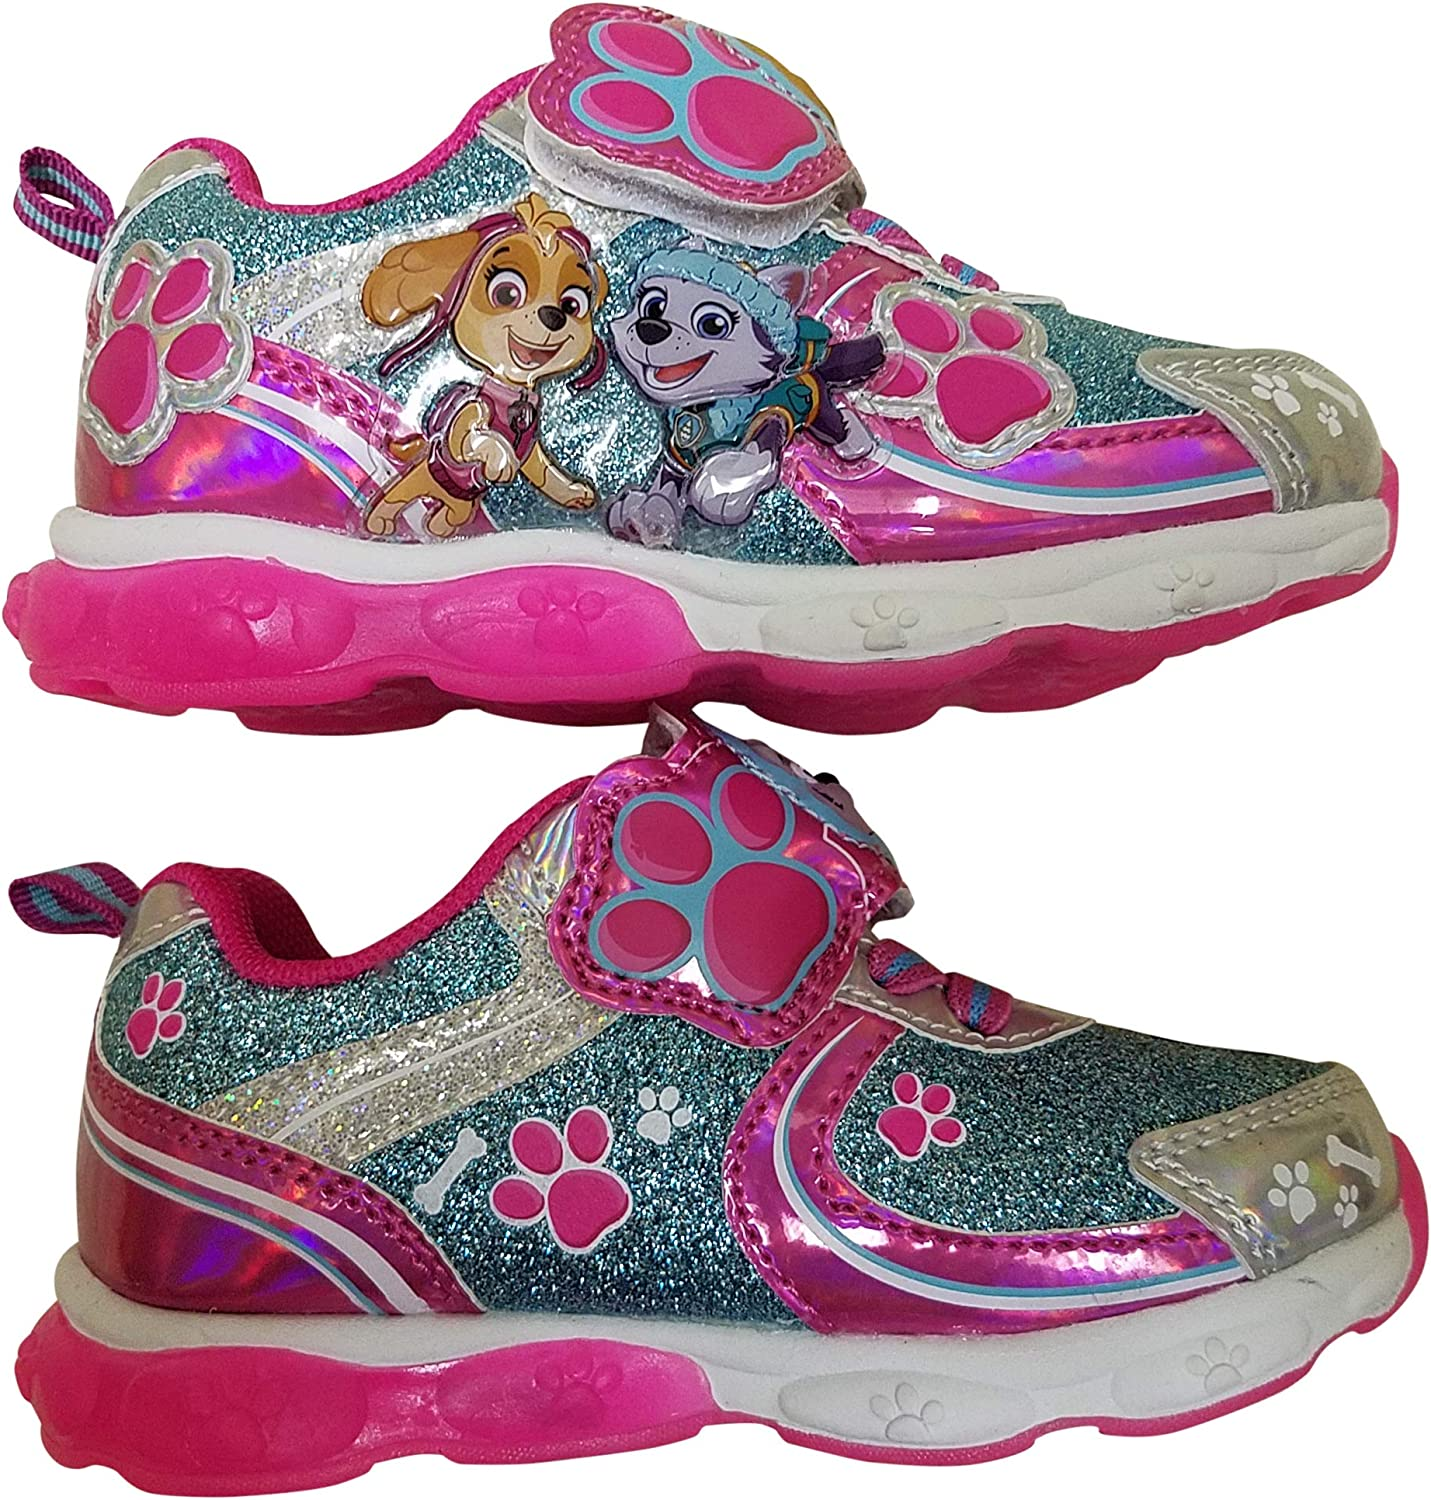 Paw Patrol Girls Light Up Sneaker Shoes with Skye and Everest